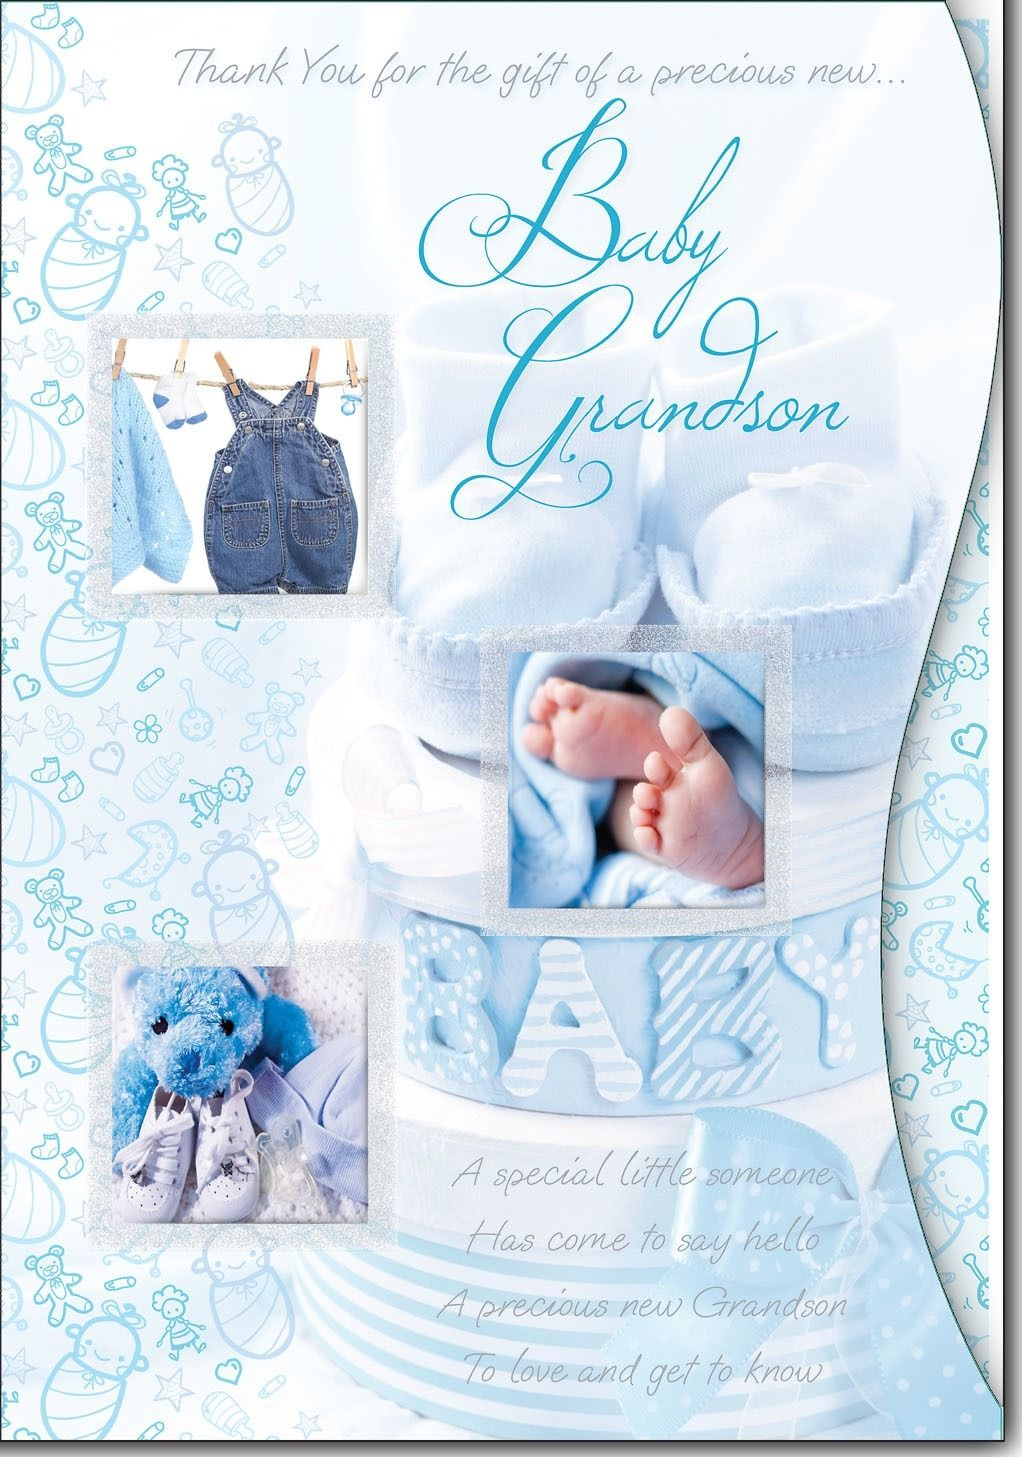 personalised greeting cards Thank You for the Gift of Precious Baby Grandson